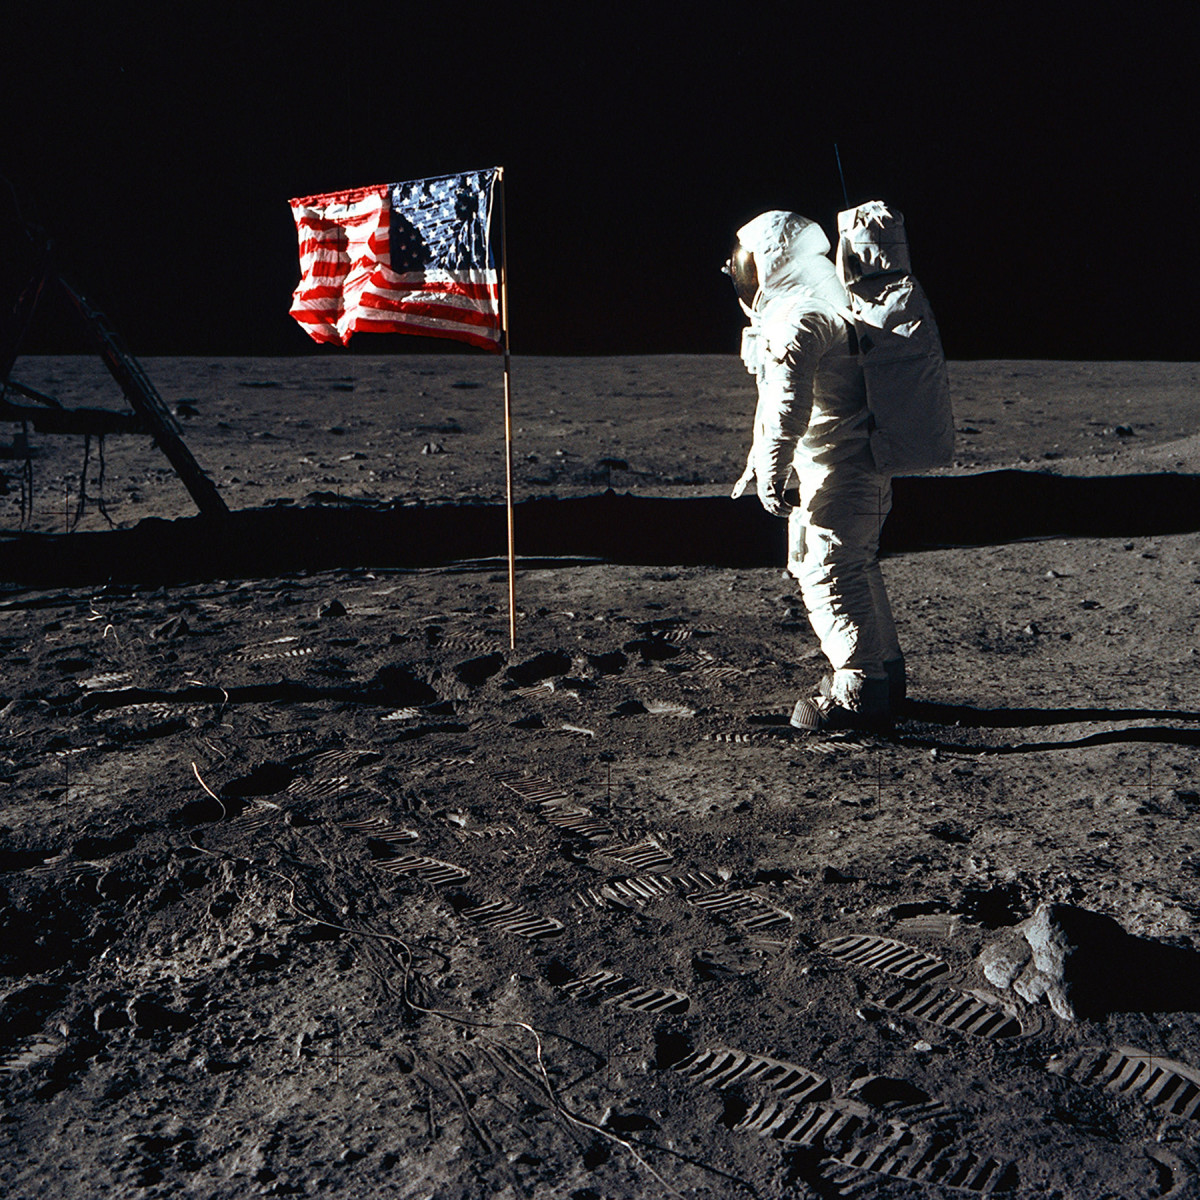 Buzz Aldrin with the American flag on the moon in 1969.